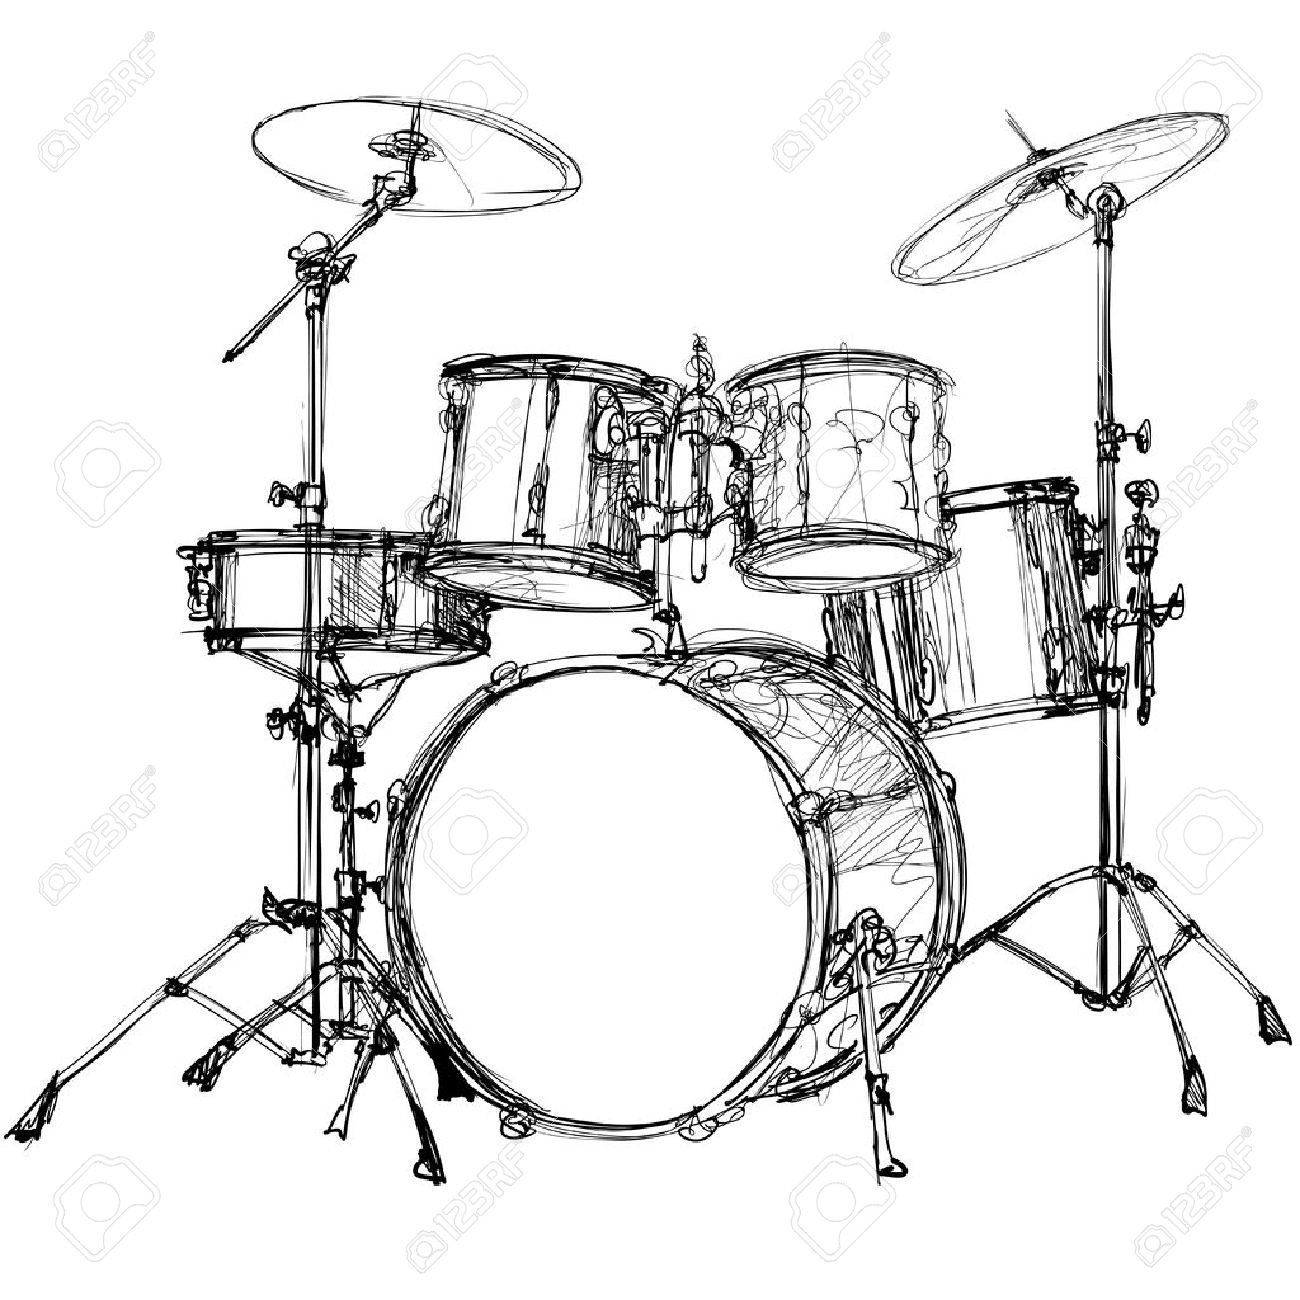 Building Vocabulary on the Drum Kit